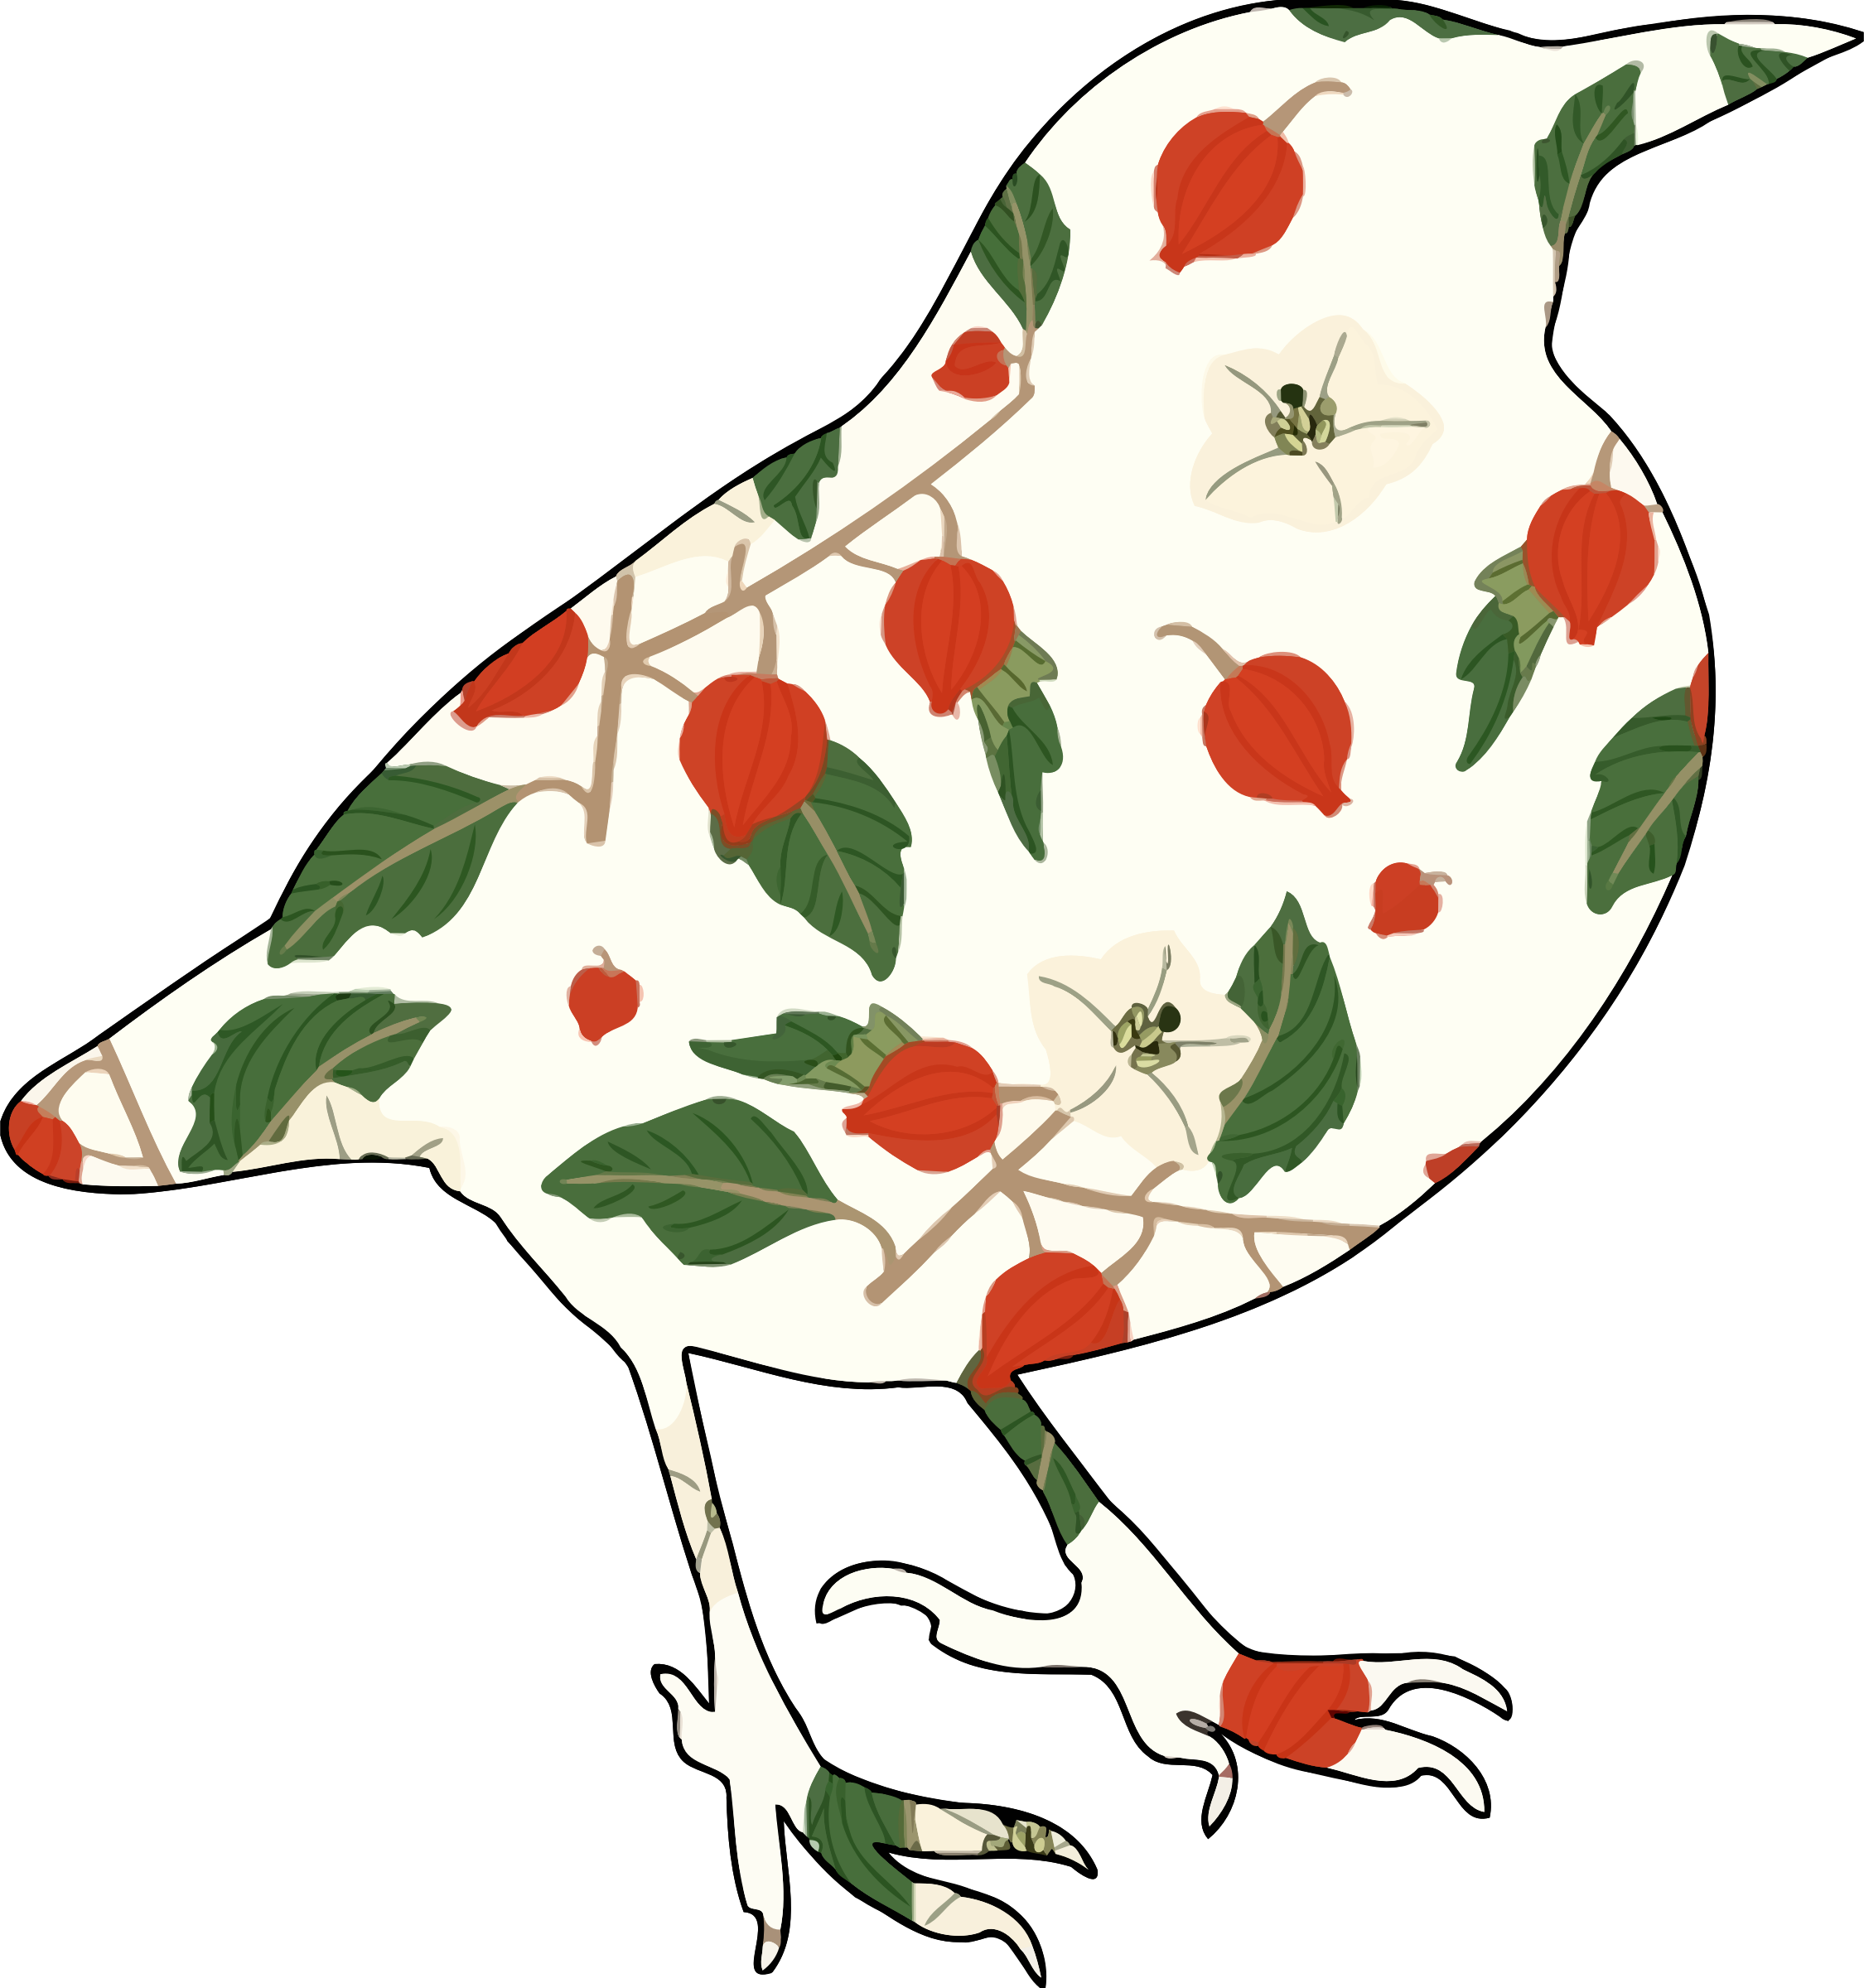 Floral bird 4 by Firkin